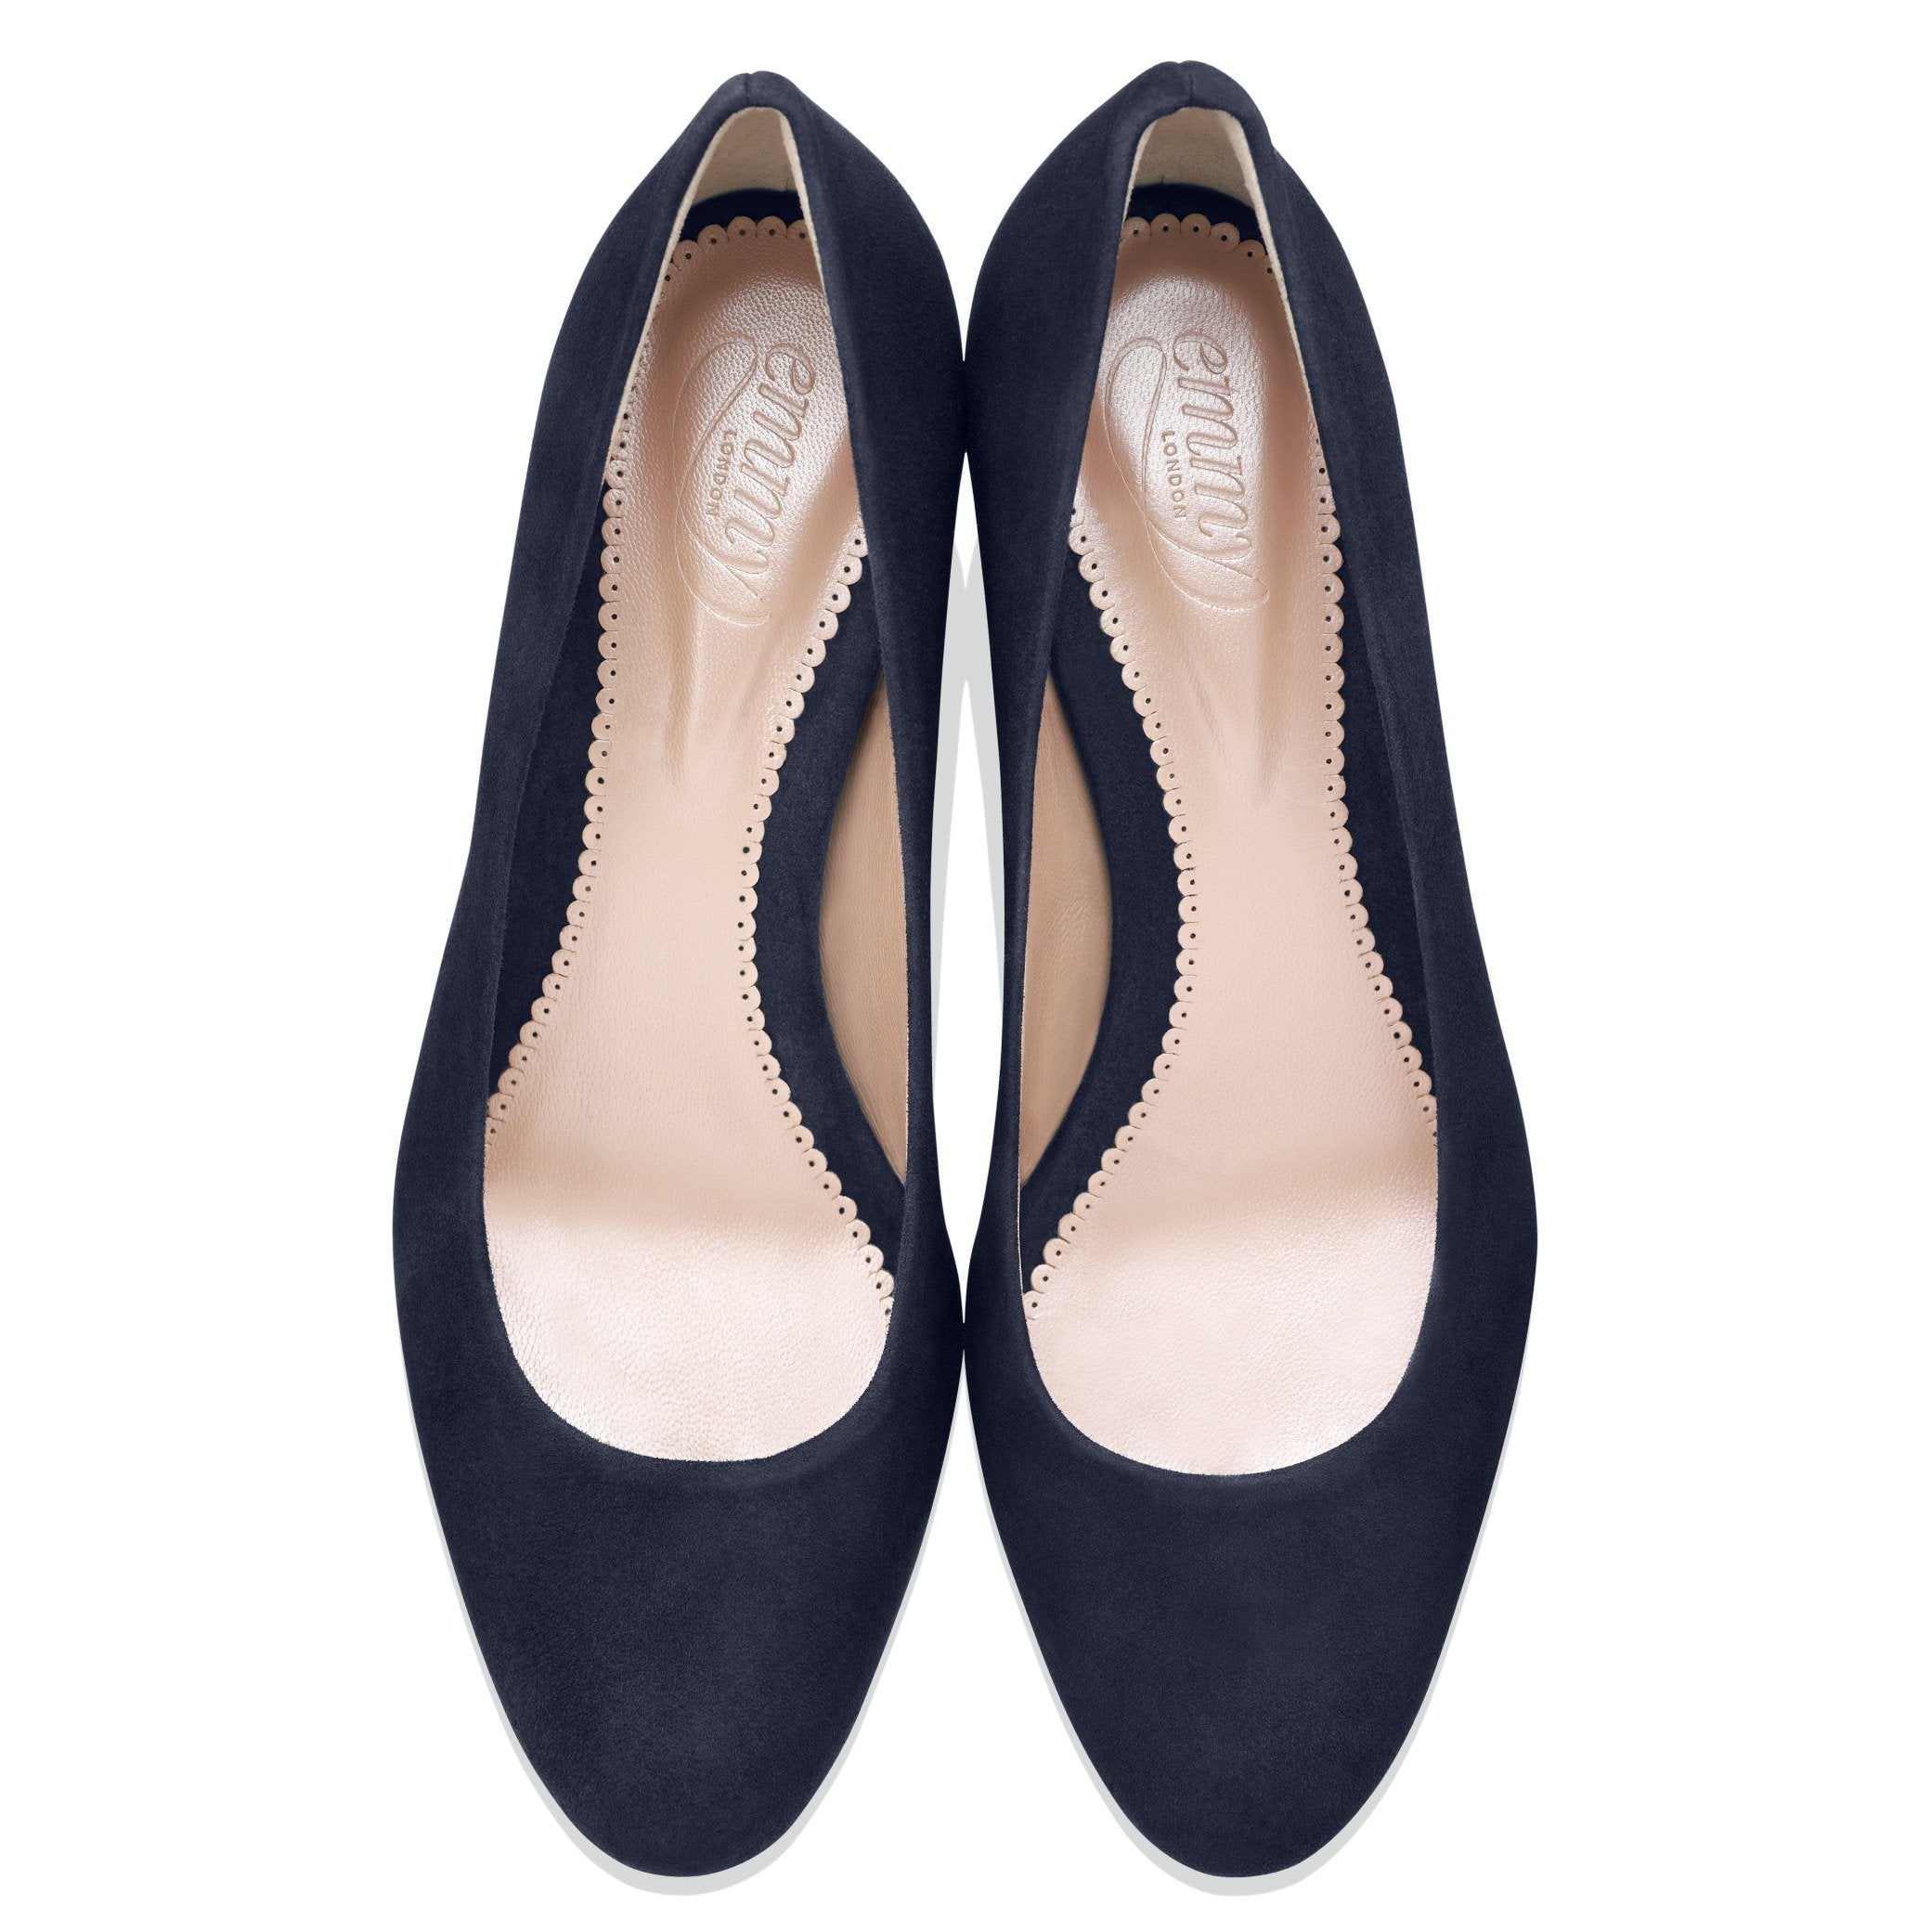 Block Heel Navy Court Shoes Designed By Emmy London